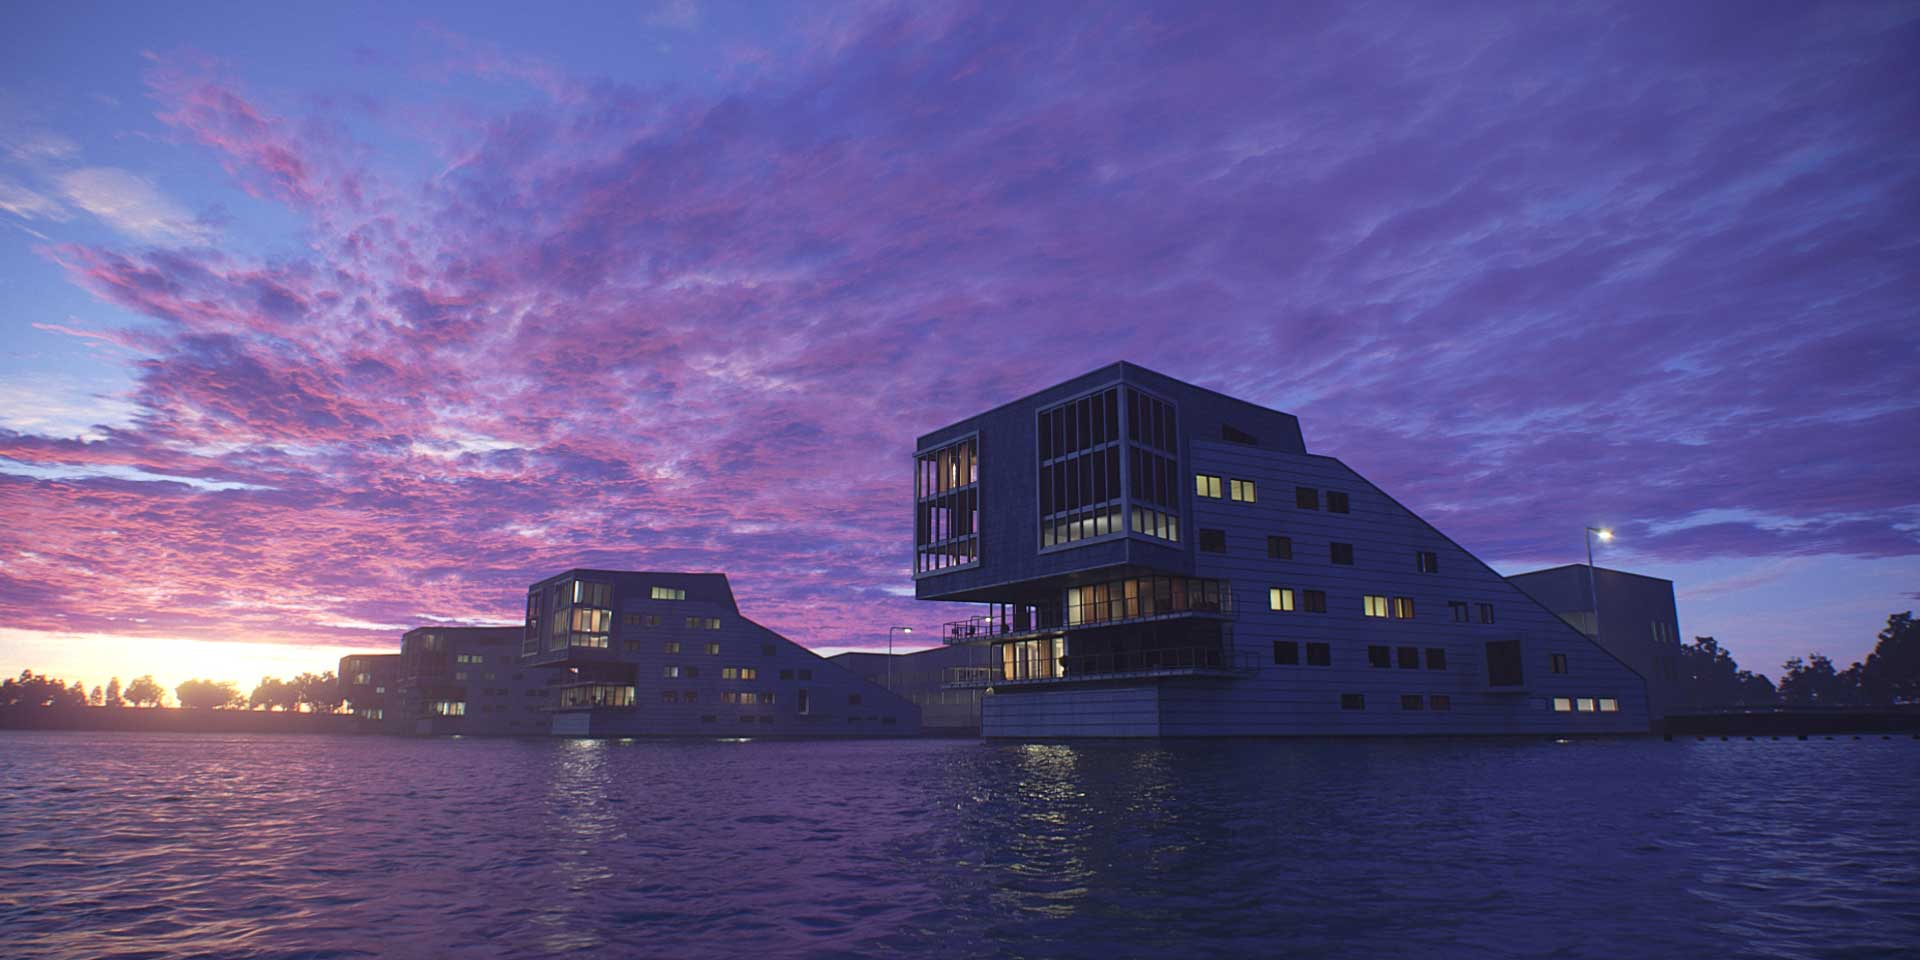 CG HDRI / Epic Sunsets from helloluxx by Shawn Astrom